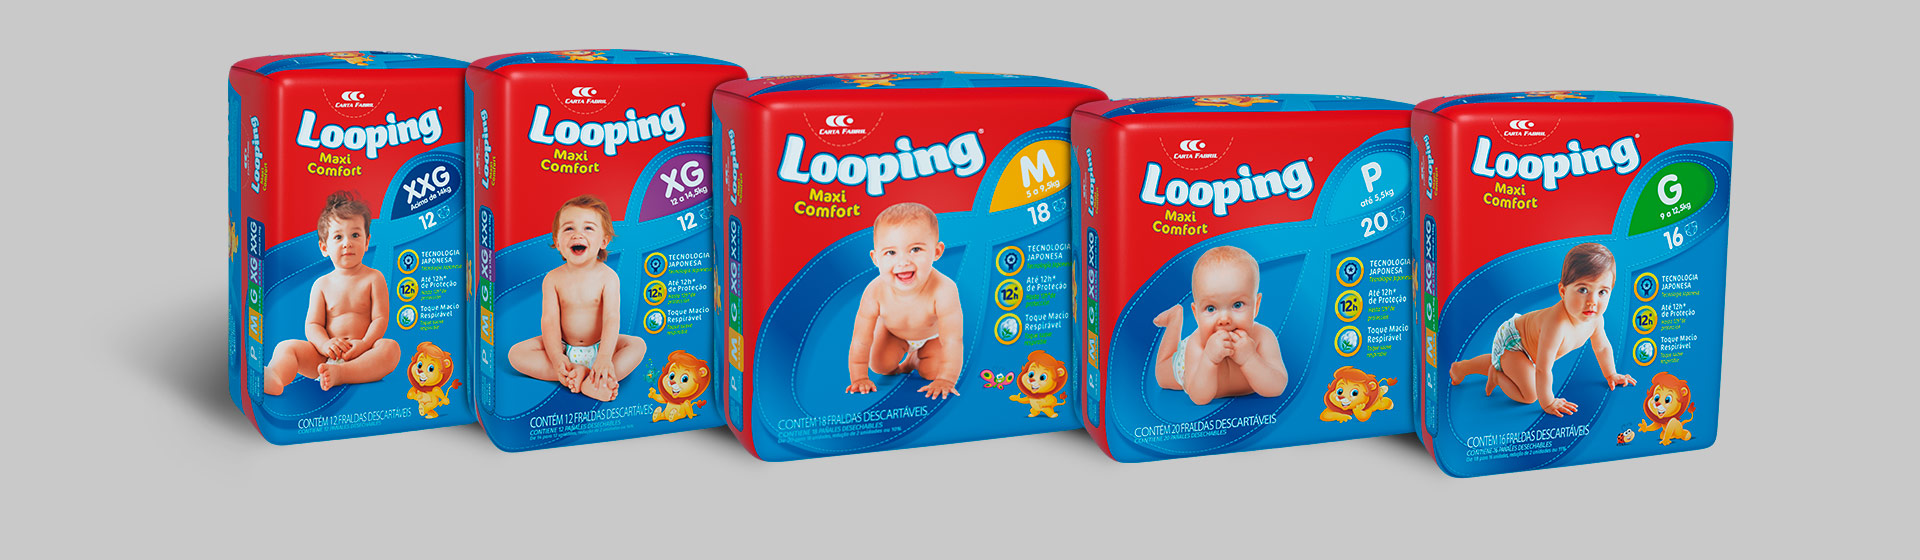 Looping Diapers